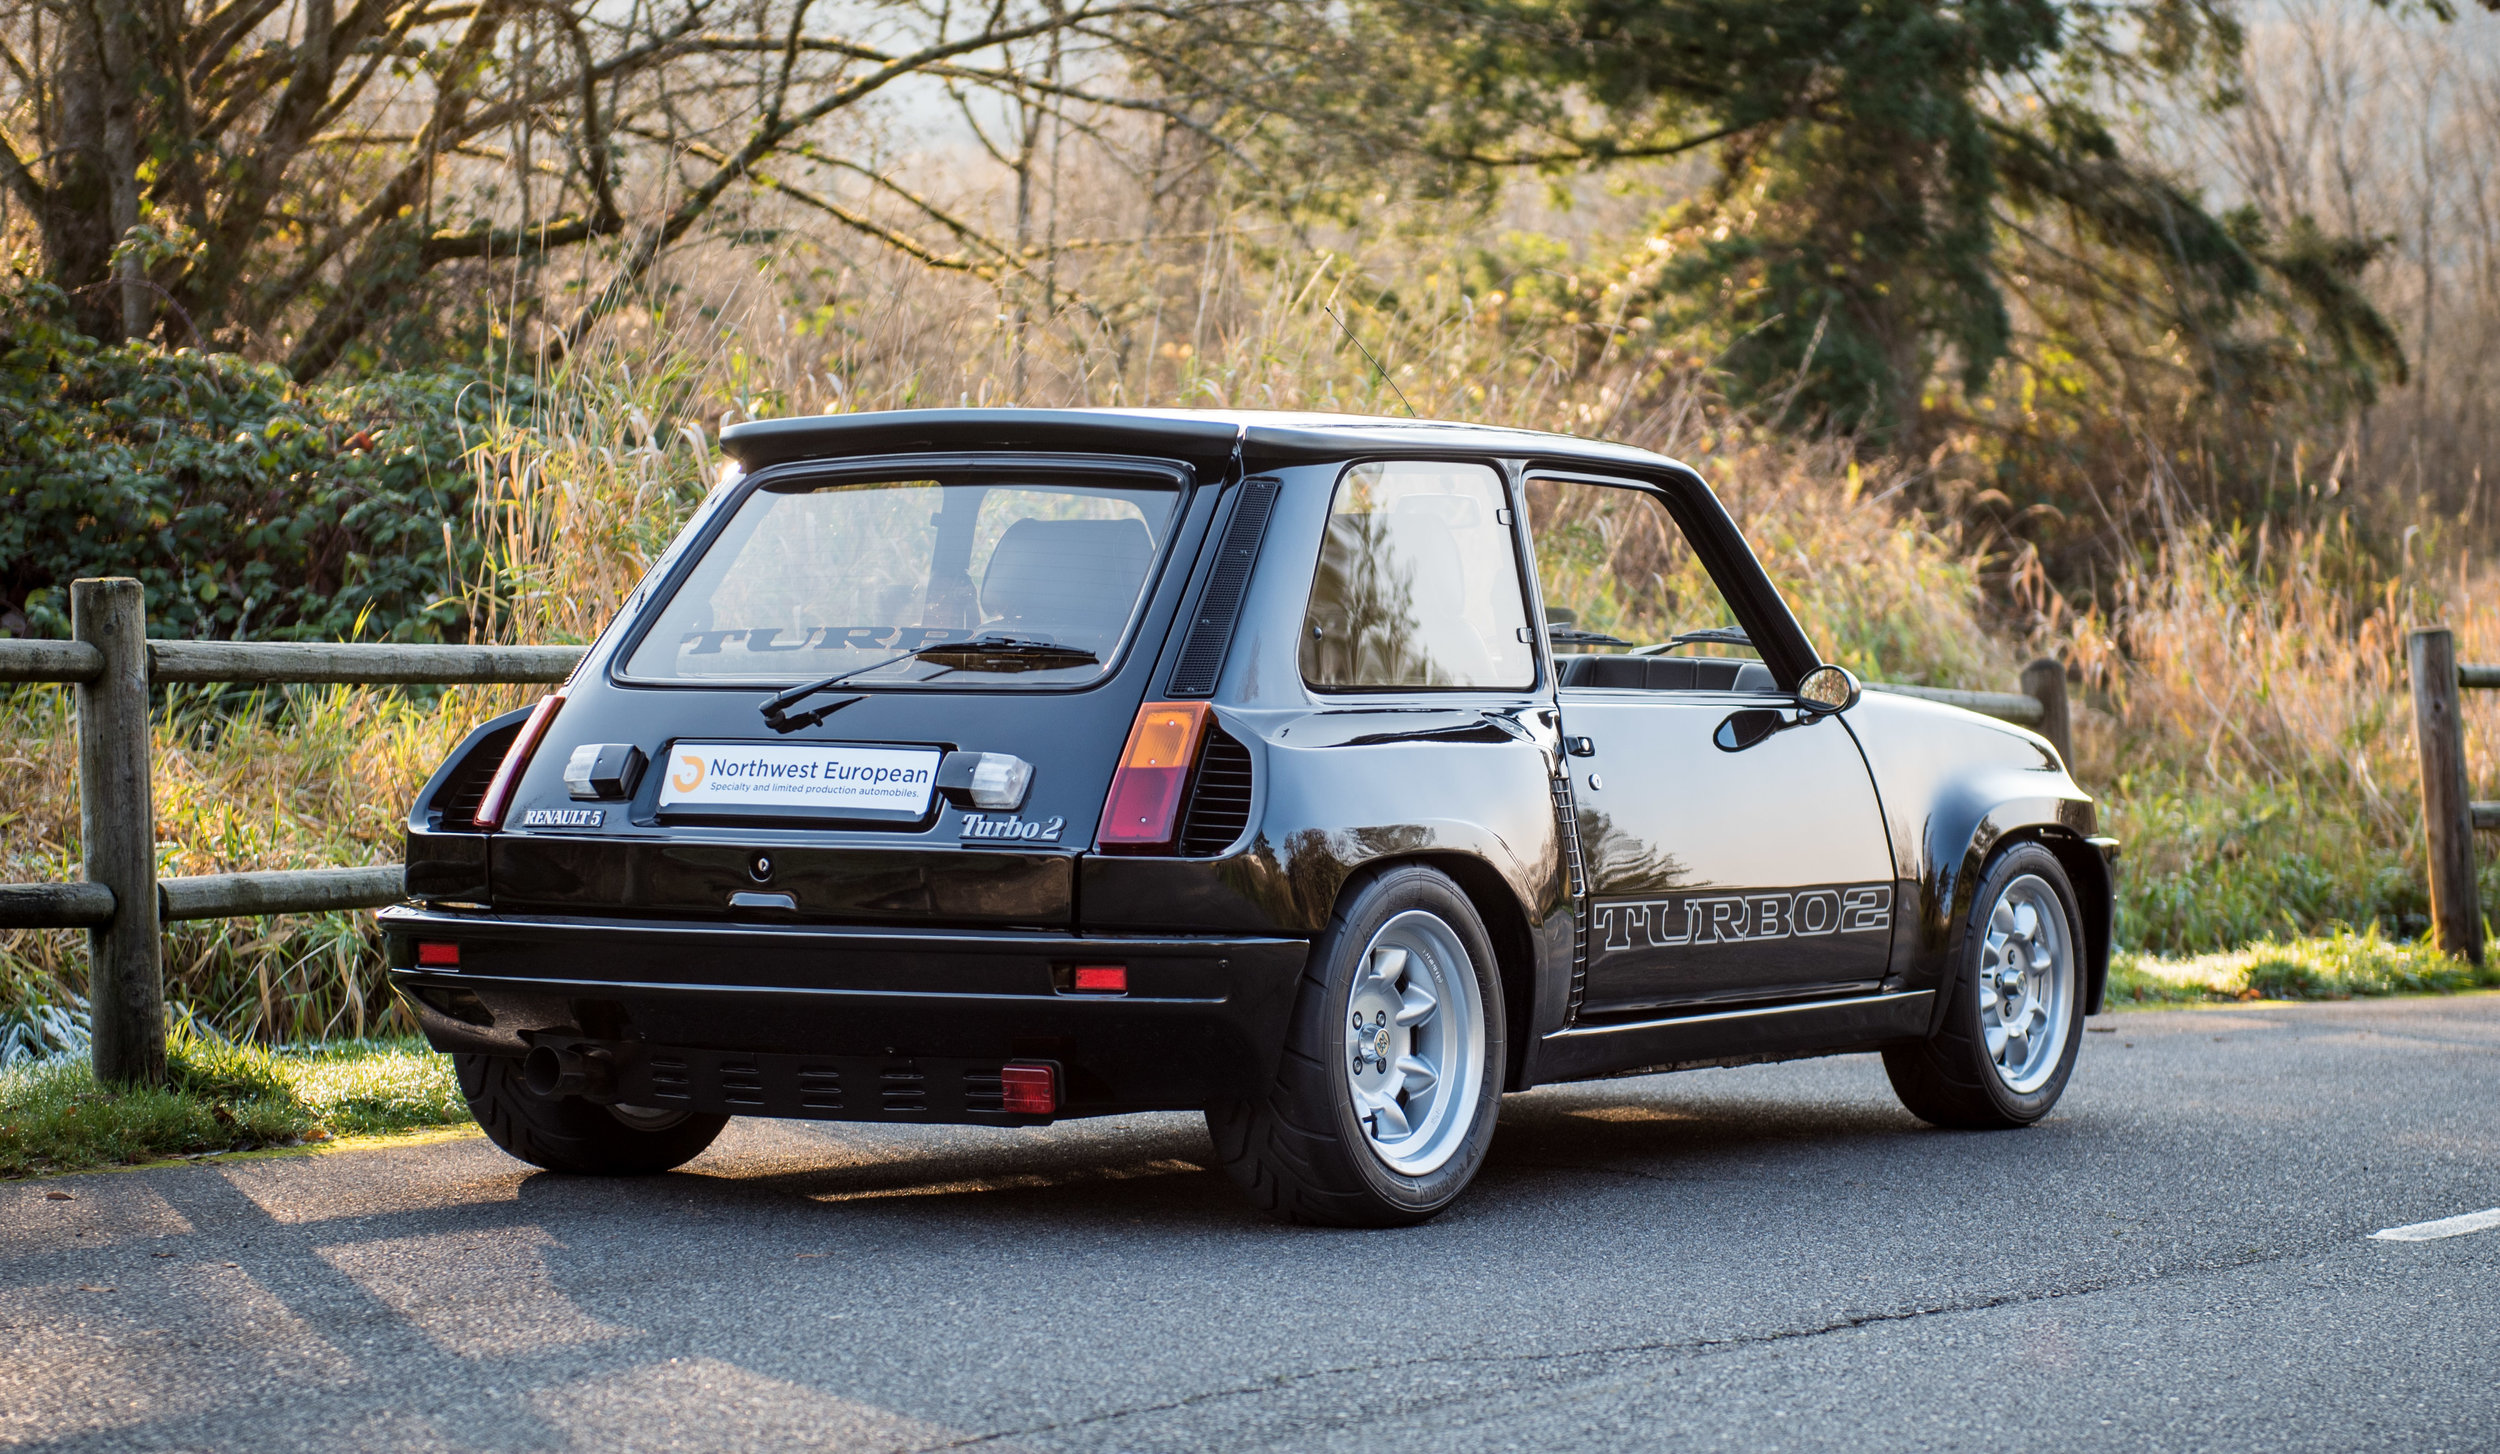 100 renault 5 maxi turbo 1983 renault 5 maxi turbo group b rally car in the paddock at. Black Bedroom Furniture Sets. Home Design Ideas